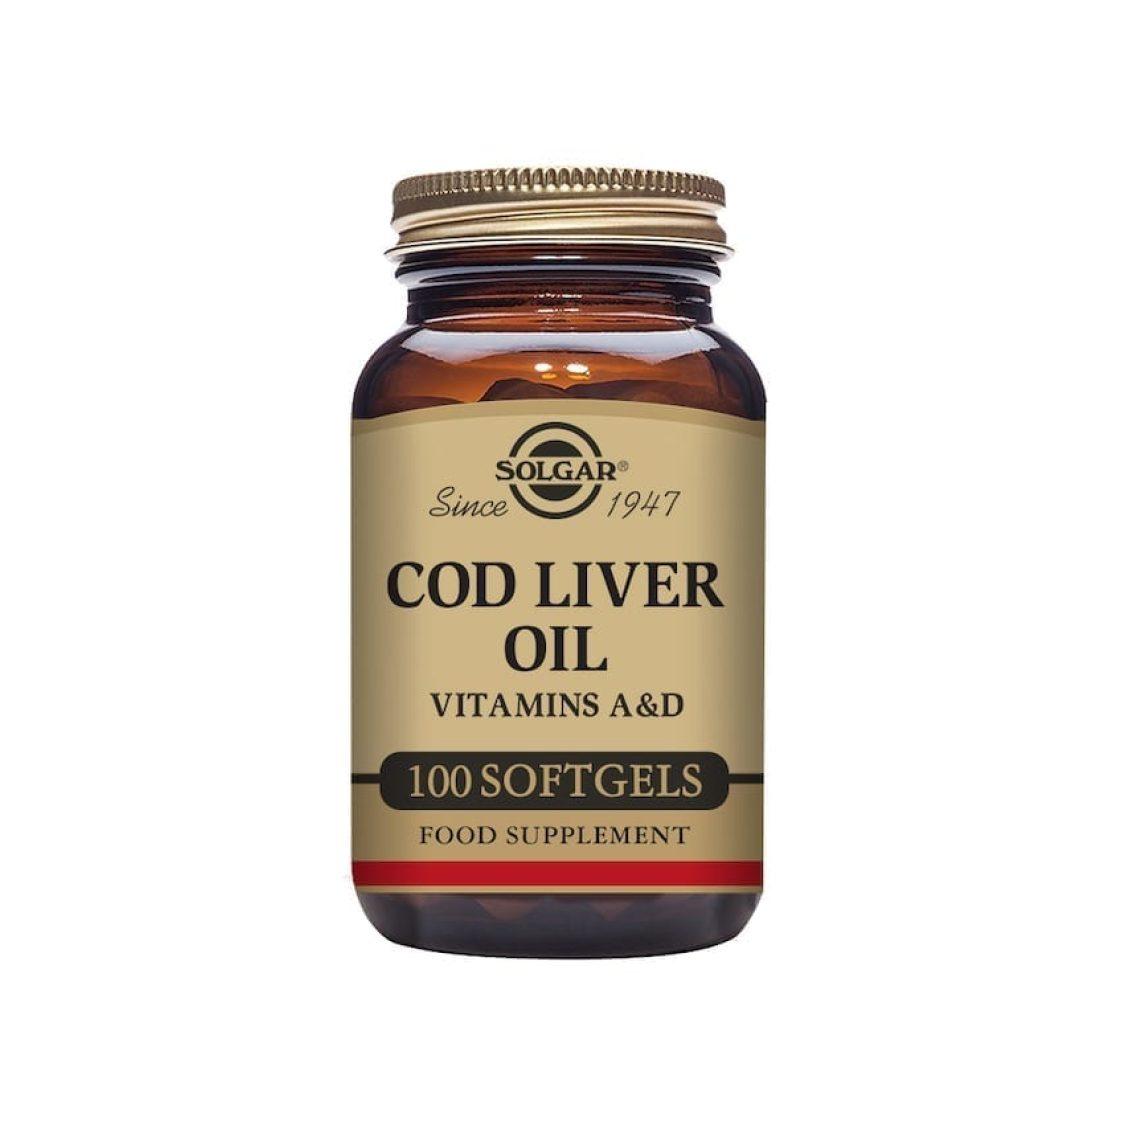 Solgar - Vitamin A & D / Cod Liver Oil - One-a-day Norwegian Cod Liver Oil - Size: 100